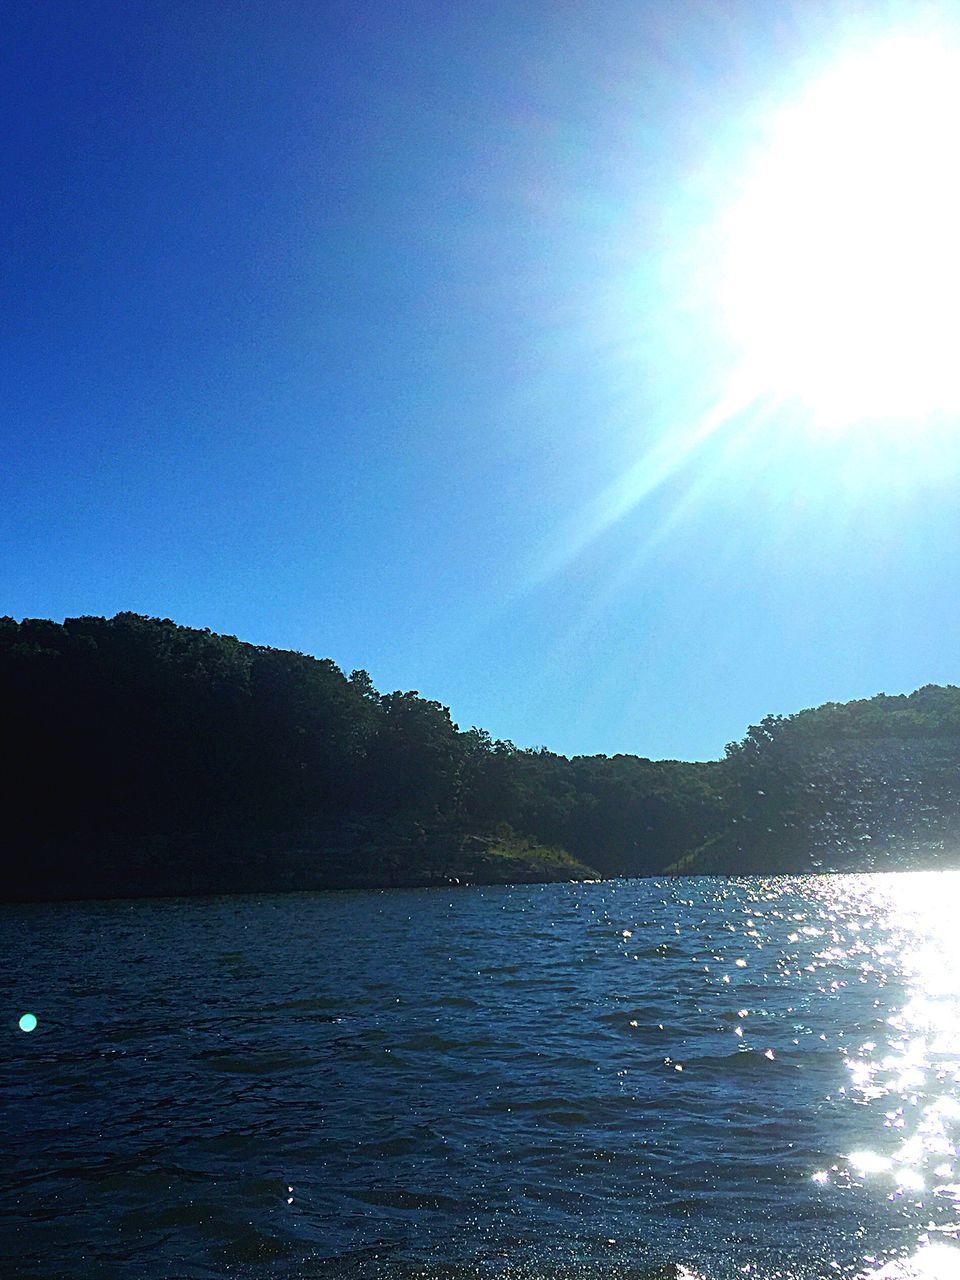 nature, sunlight, blue, water, beauty in nature, tranquility, outdoors, scenics, tranquil scene, sea, no people, sky, day, tree